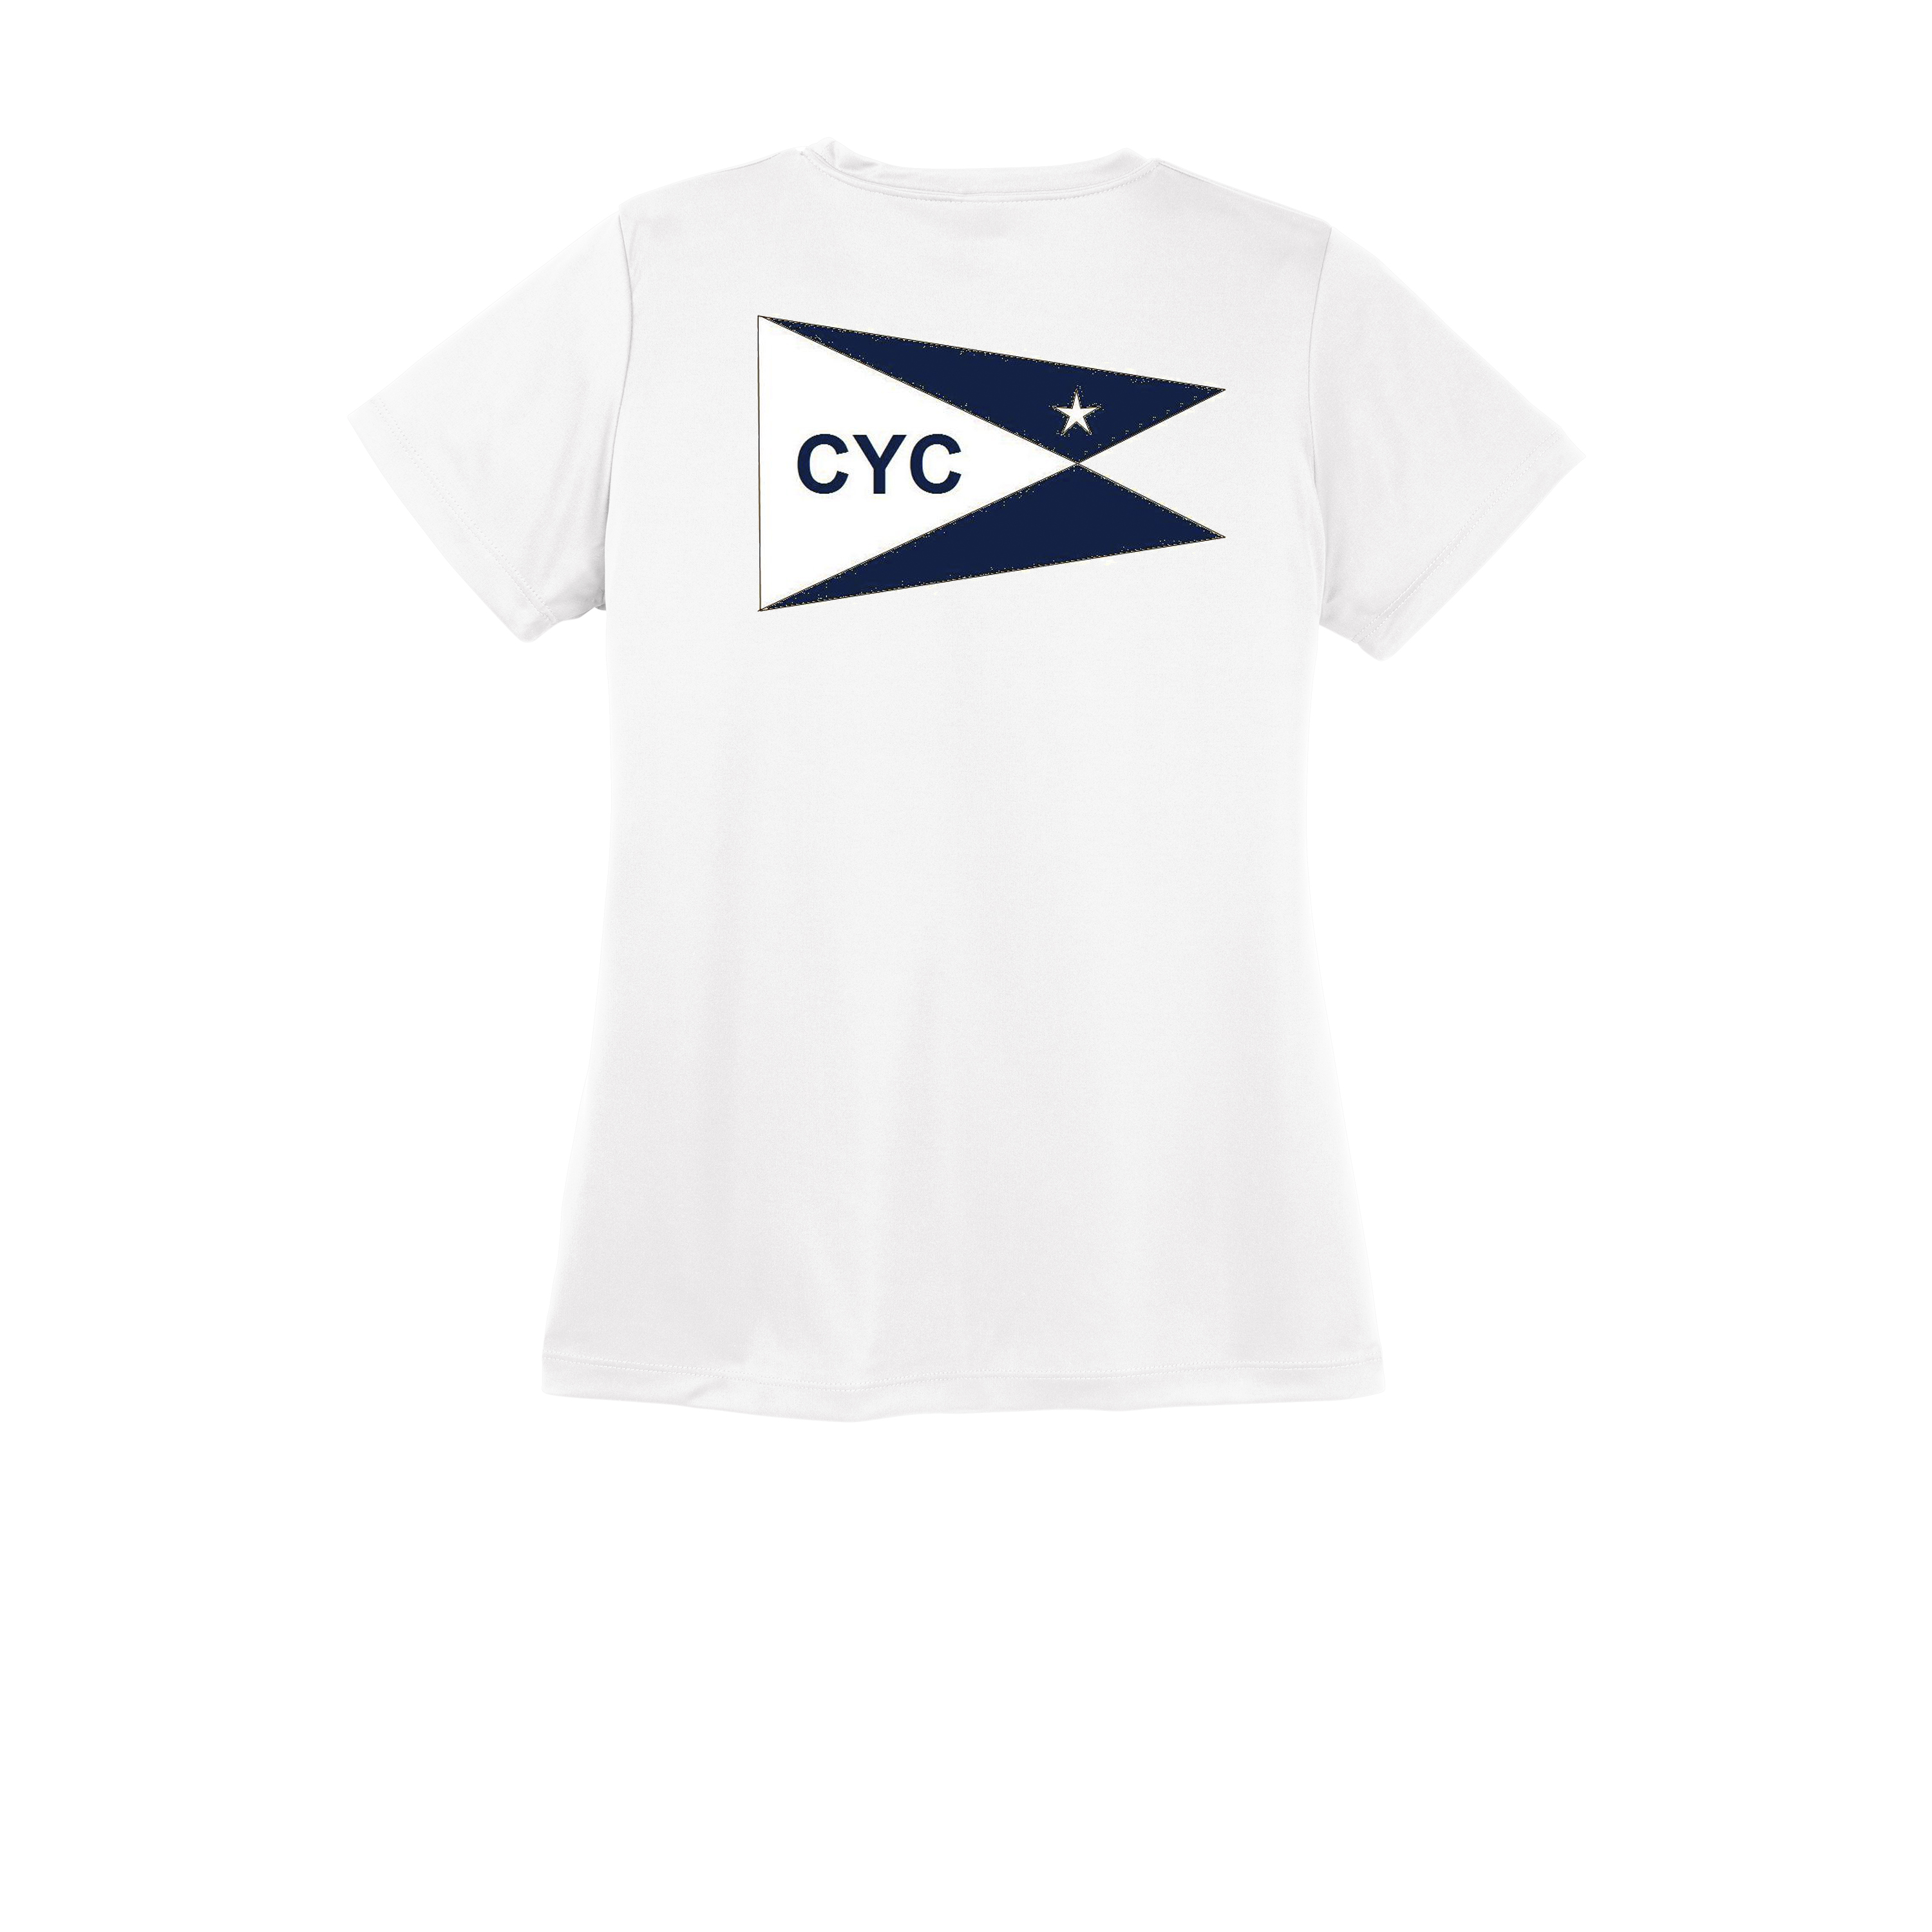 CENTERBOARD YACHT CLUB WOMEN'S SS TECH TEE